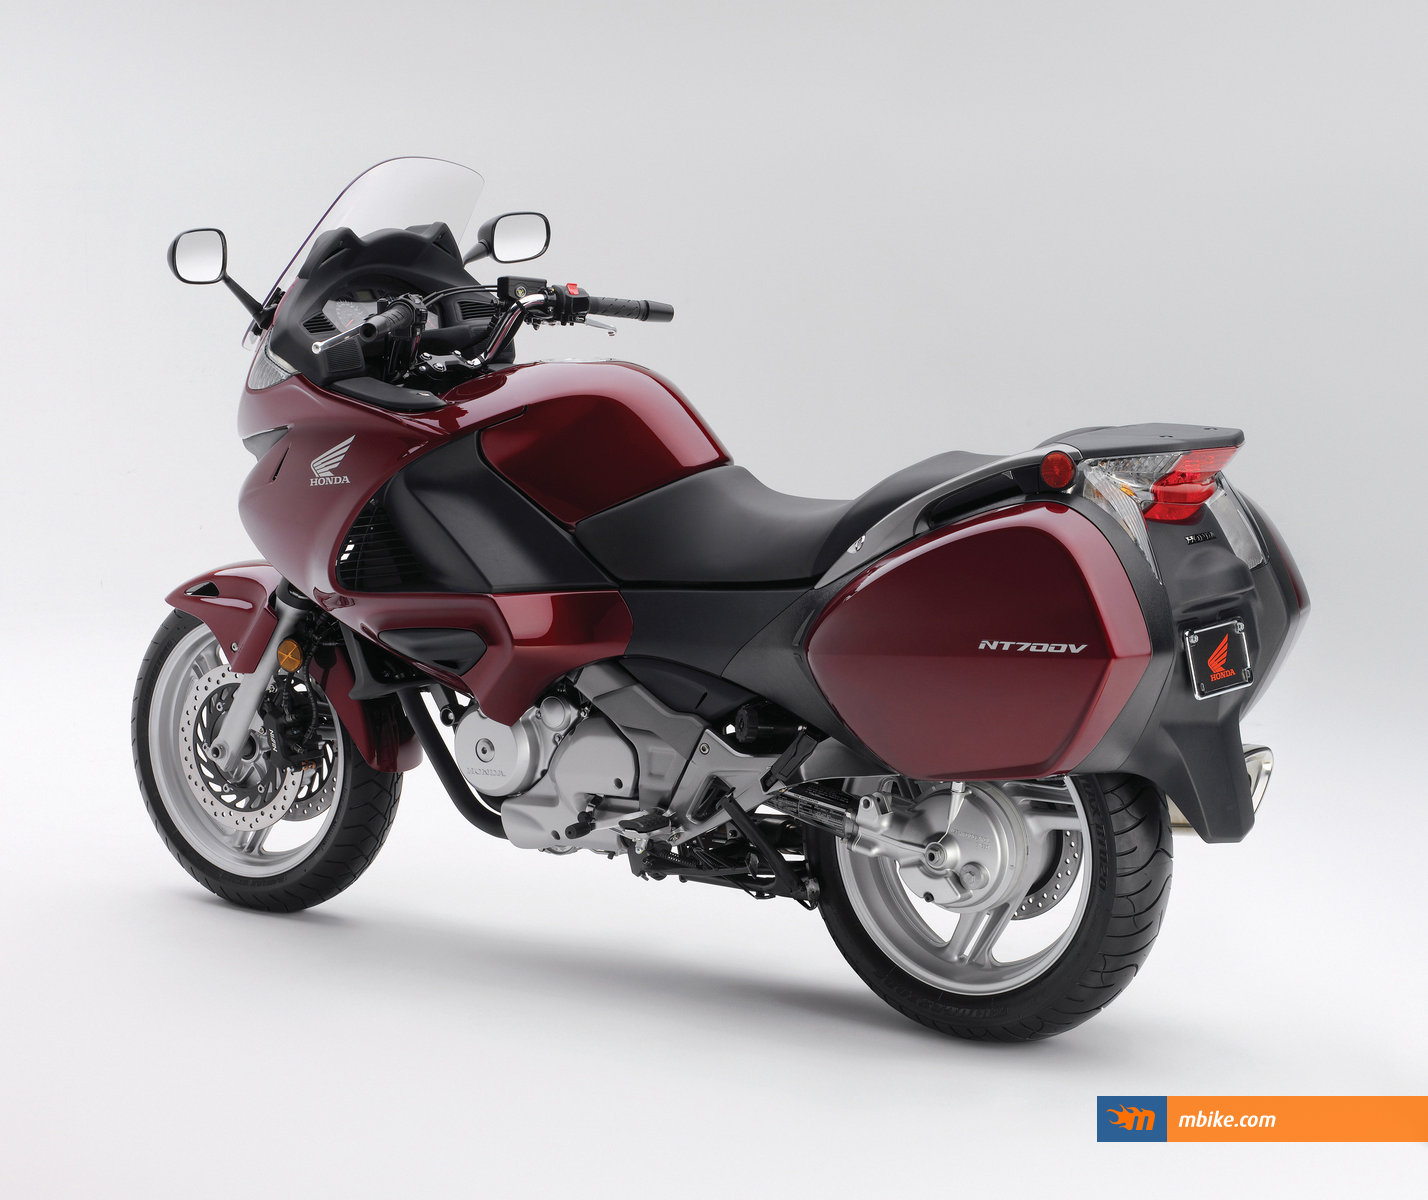 Honda Vermont 700 Specifications Ehow: Honda Deauville 700 C-ABS: Pics, Specs And List Of Seriess